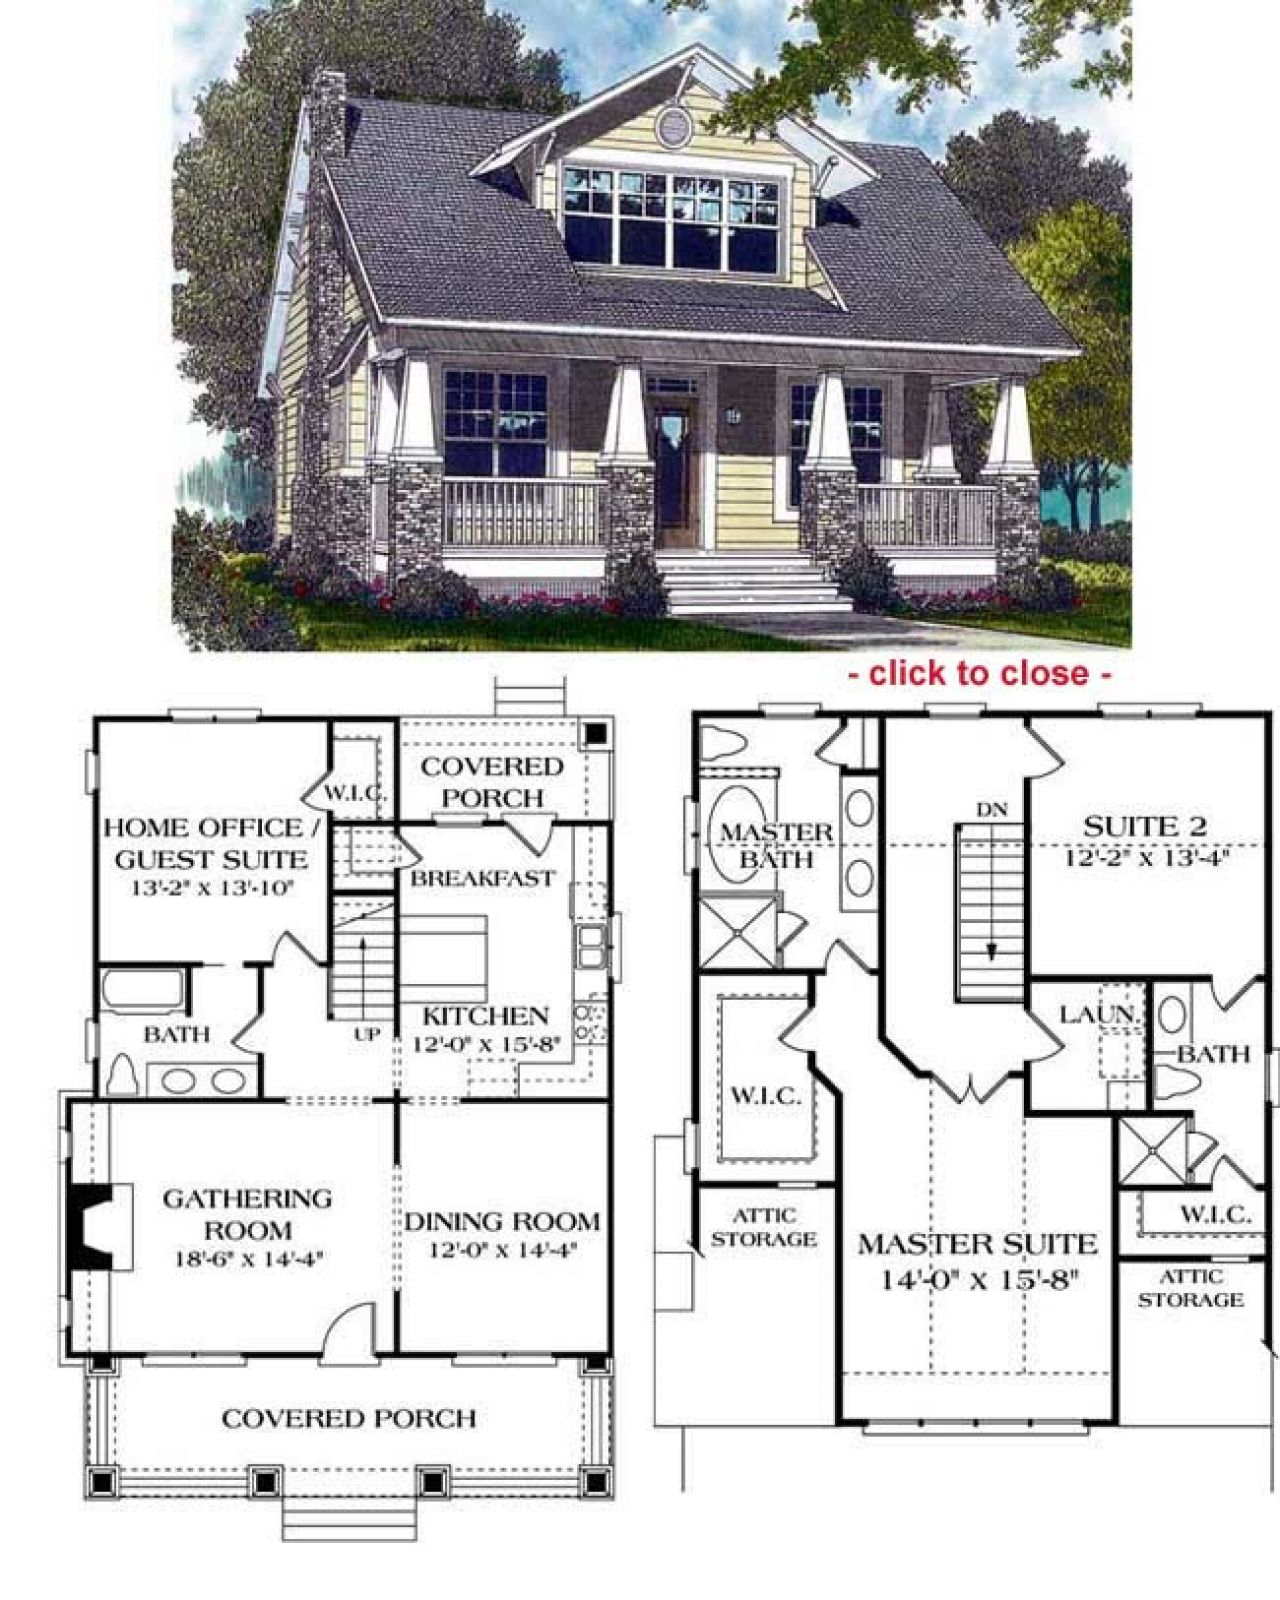 bungalow house styles | Craftsman house plans and ...